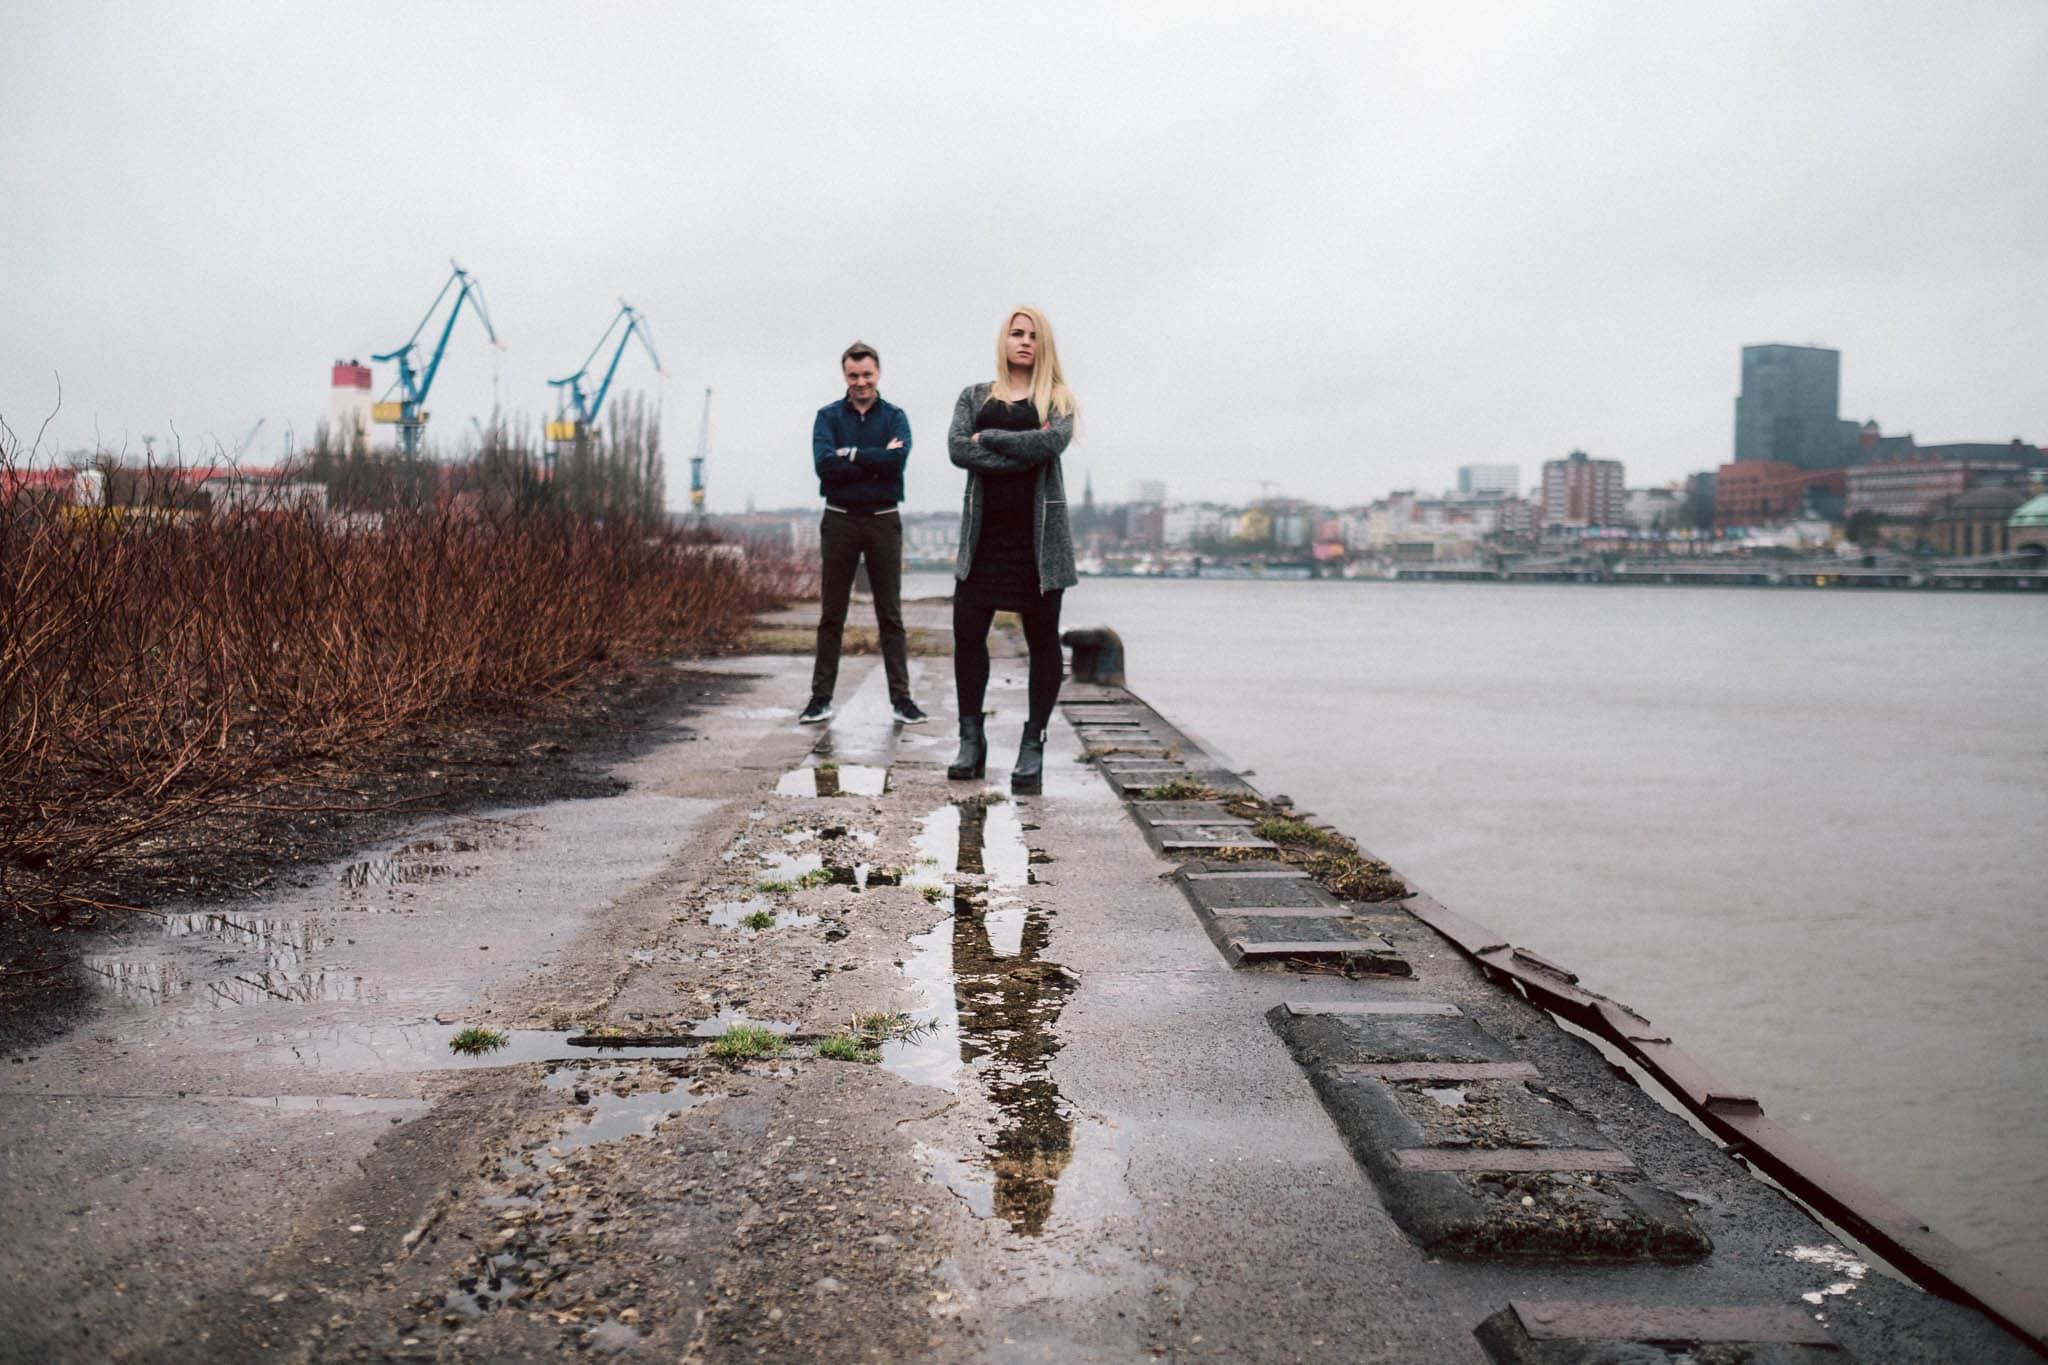 Engagementshooting, Hochzeitsfieber by Photo-Schomburg, Pärchenshoot, Hamburg, Elbe, Hamburger Hafen, Hochzeitsfotograf, Wedding, Coupleshoot, Hochzeitsfotografie-6